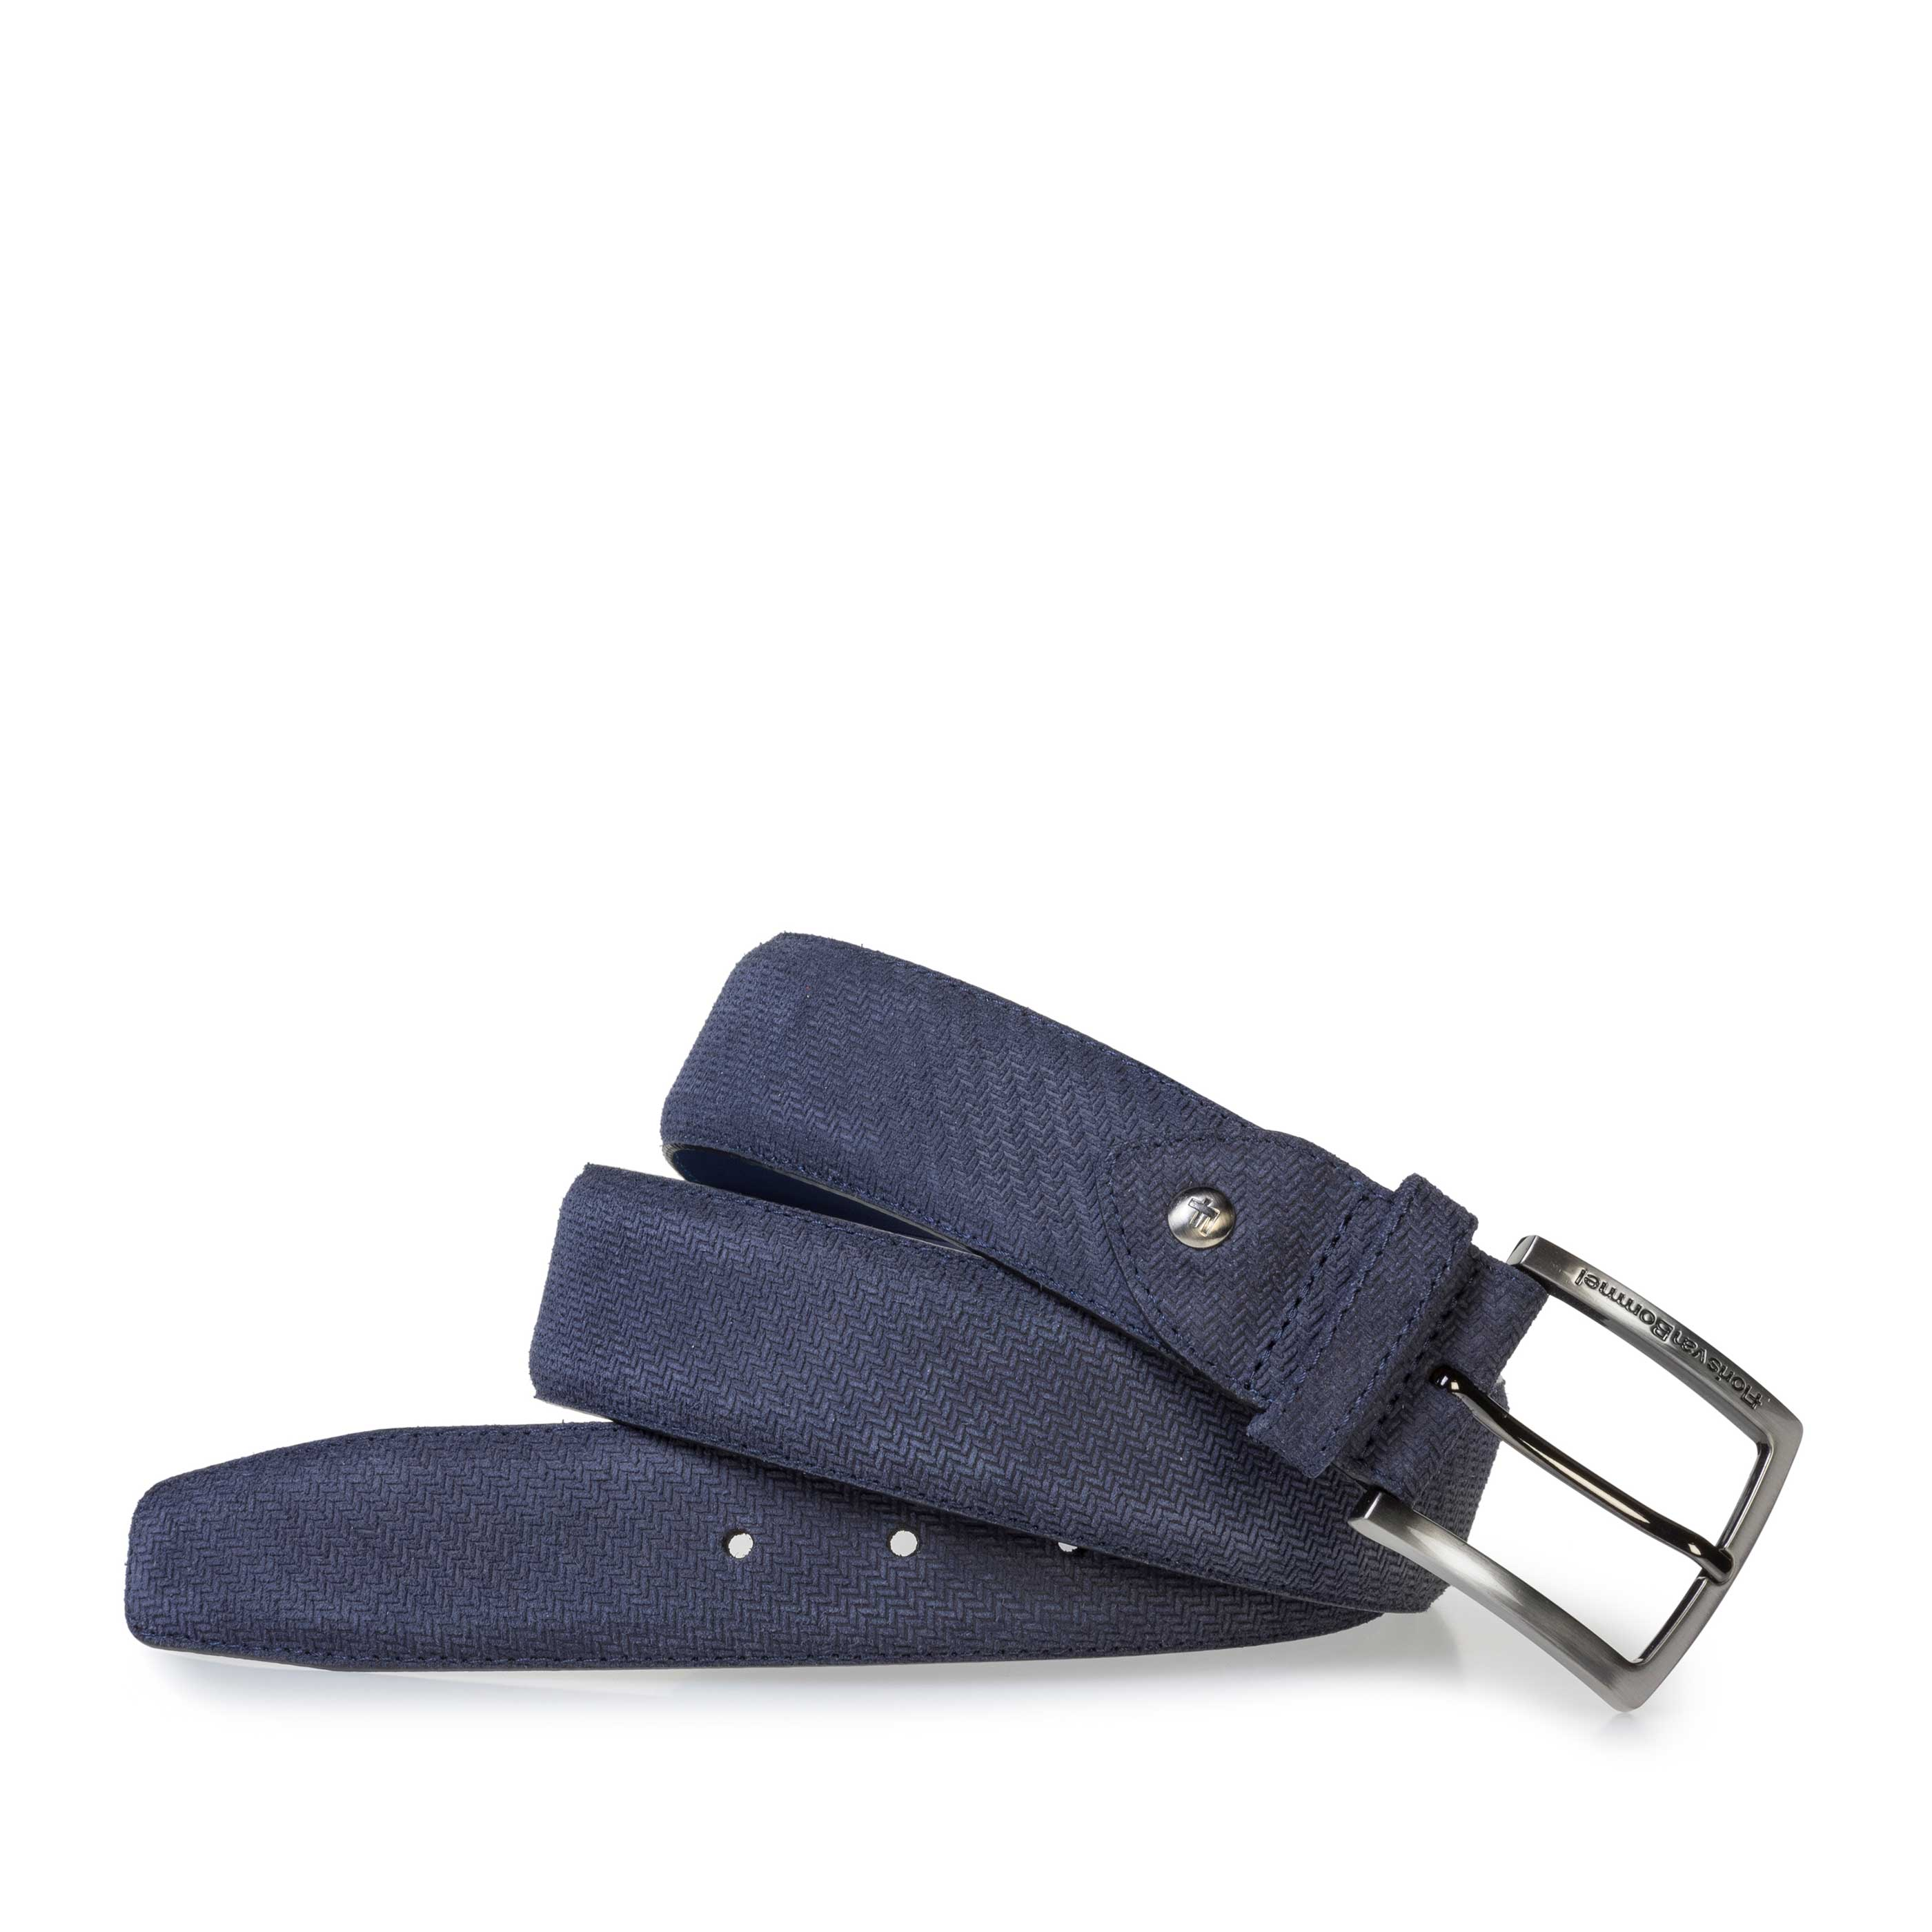 75202/44 - Dark blue suede leather belt with print